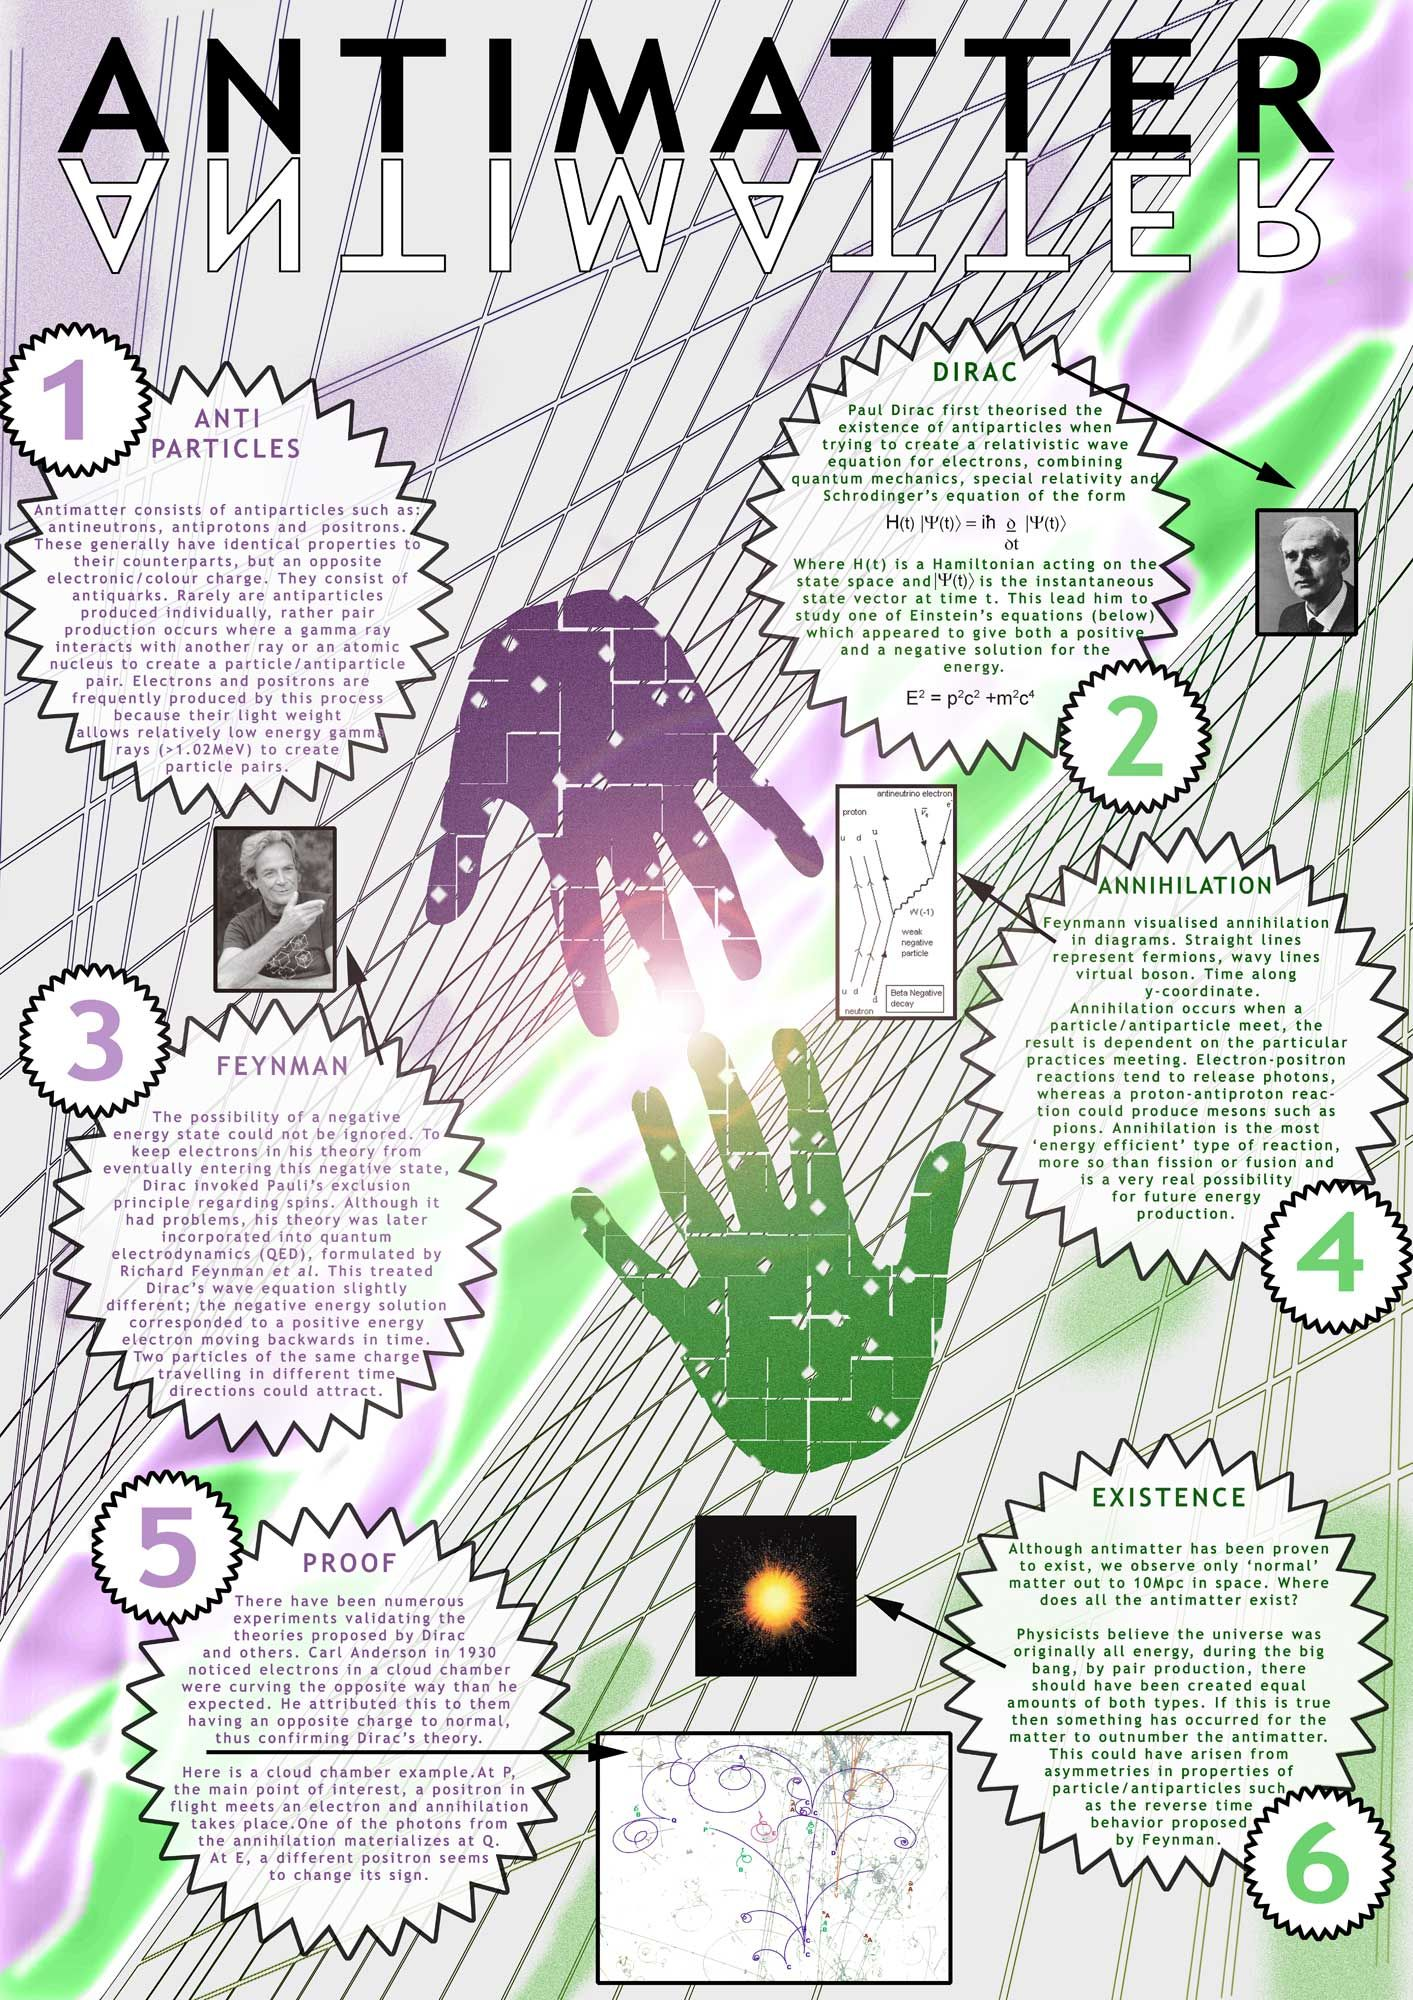 Anti-Matter infographic. (View it quickly before it meets up with the matter infographic.)